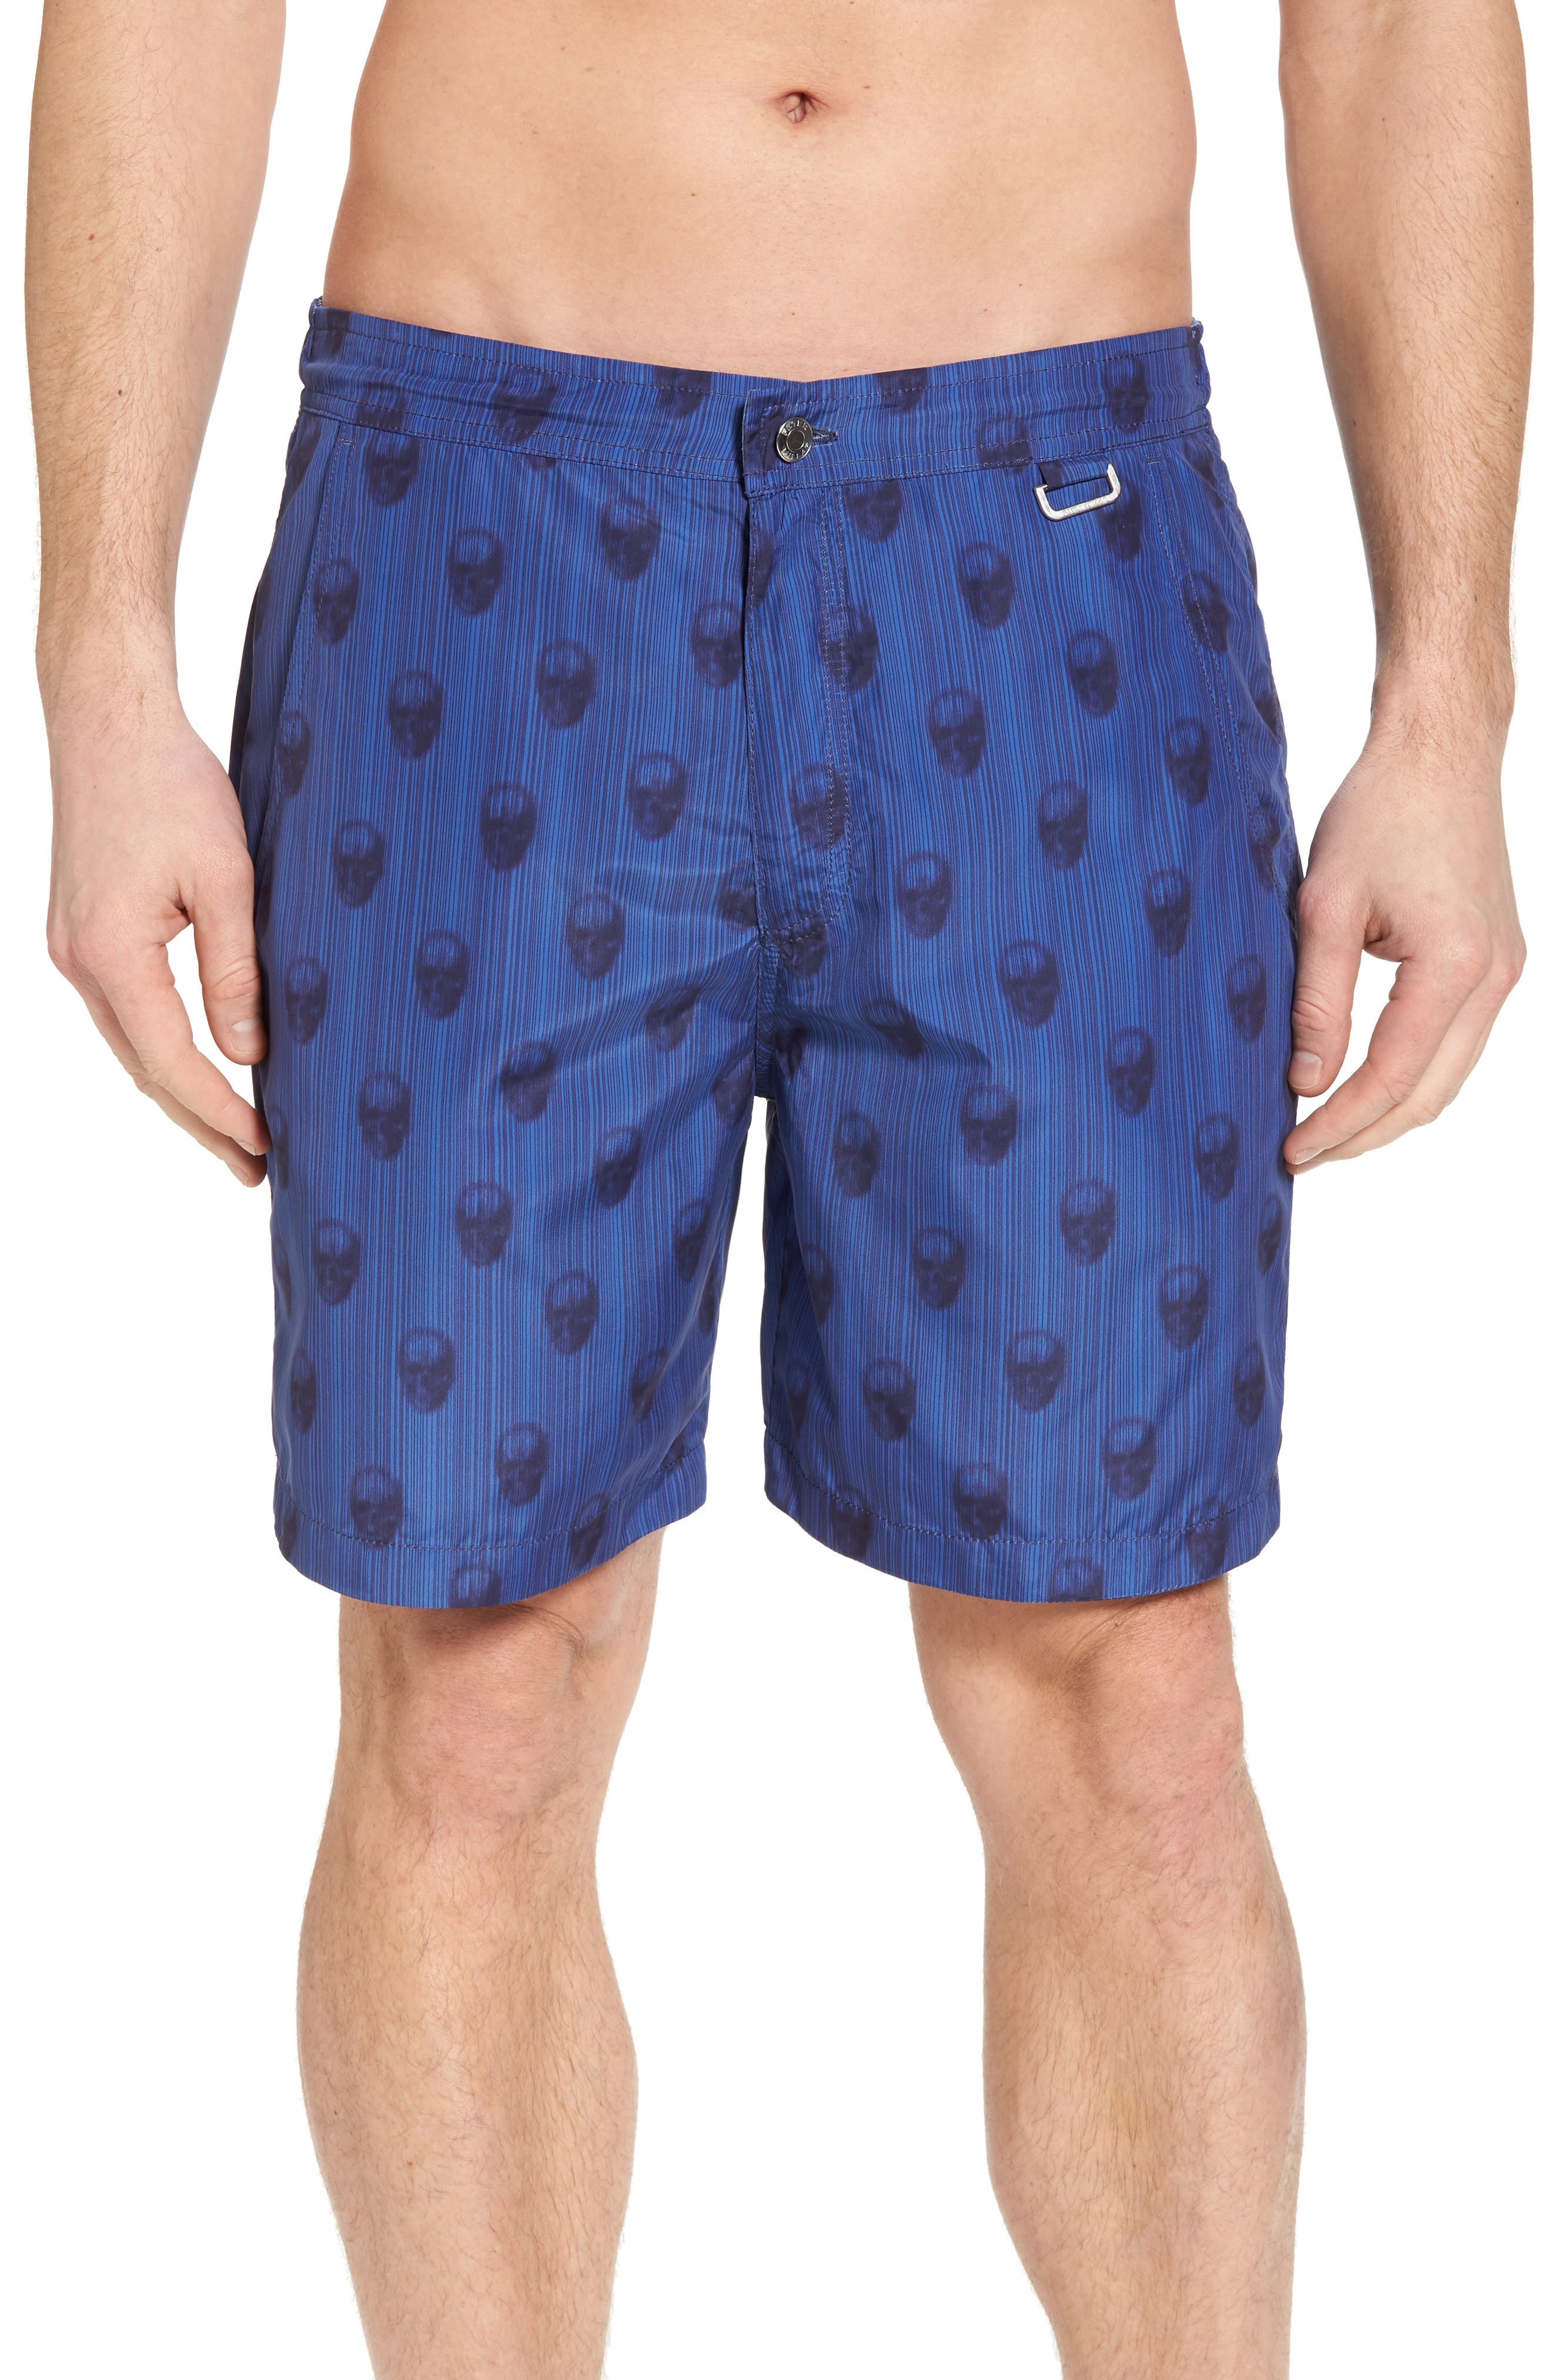 Peter Millar Black Jack's Bay Swim Trunks,                             Main thumbnail 1, color,                             440